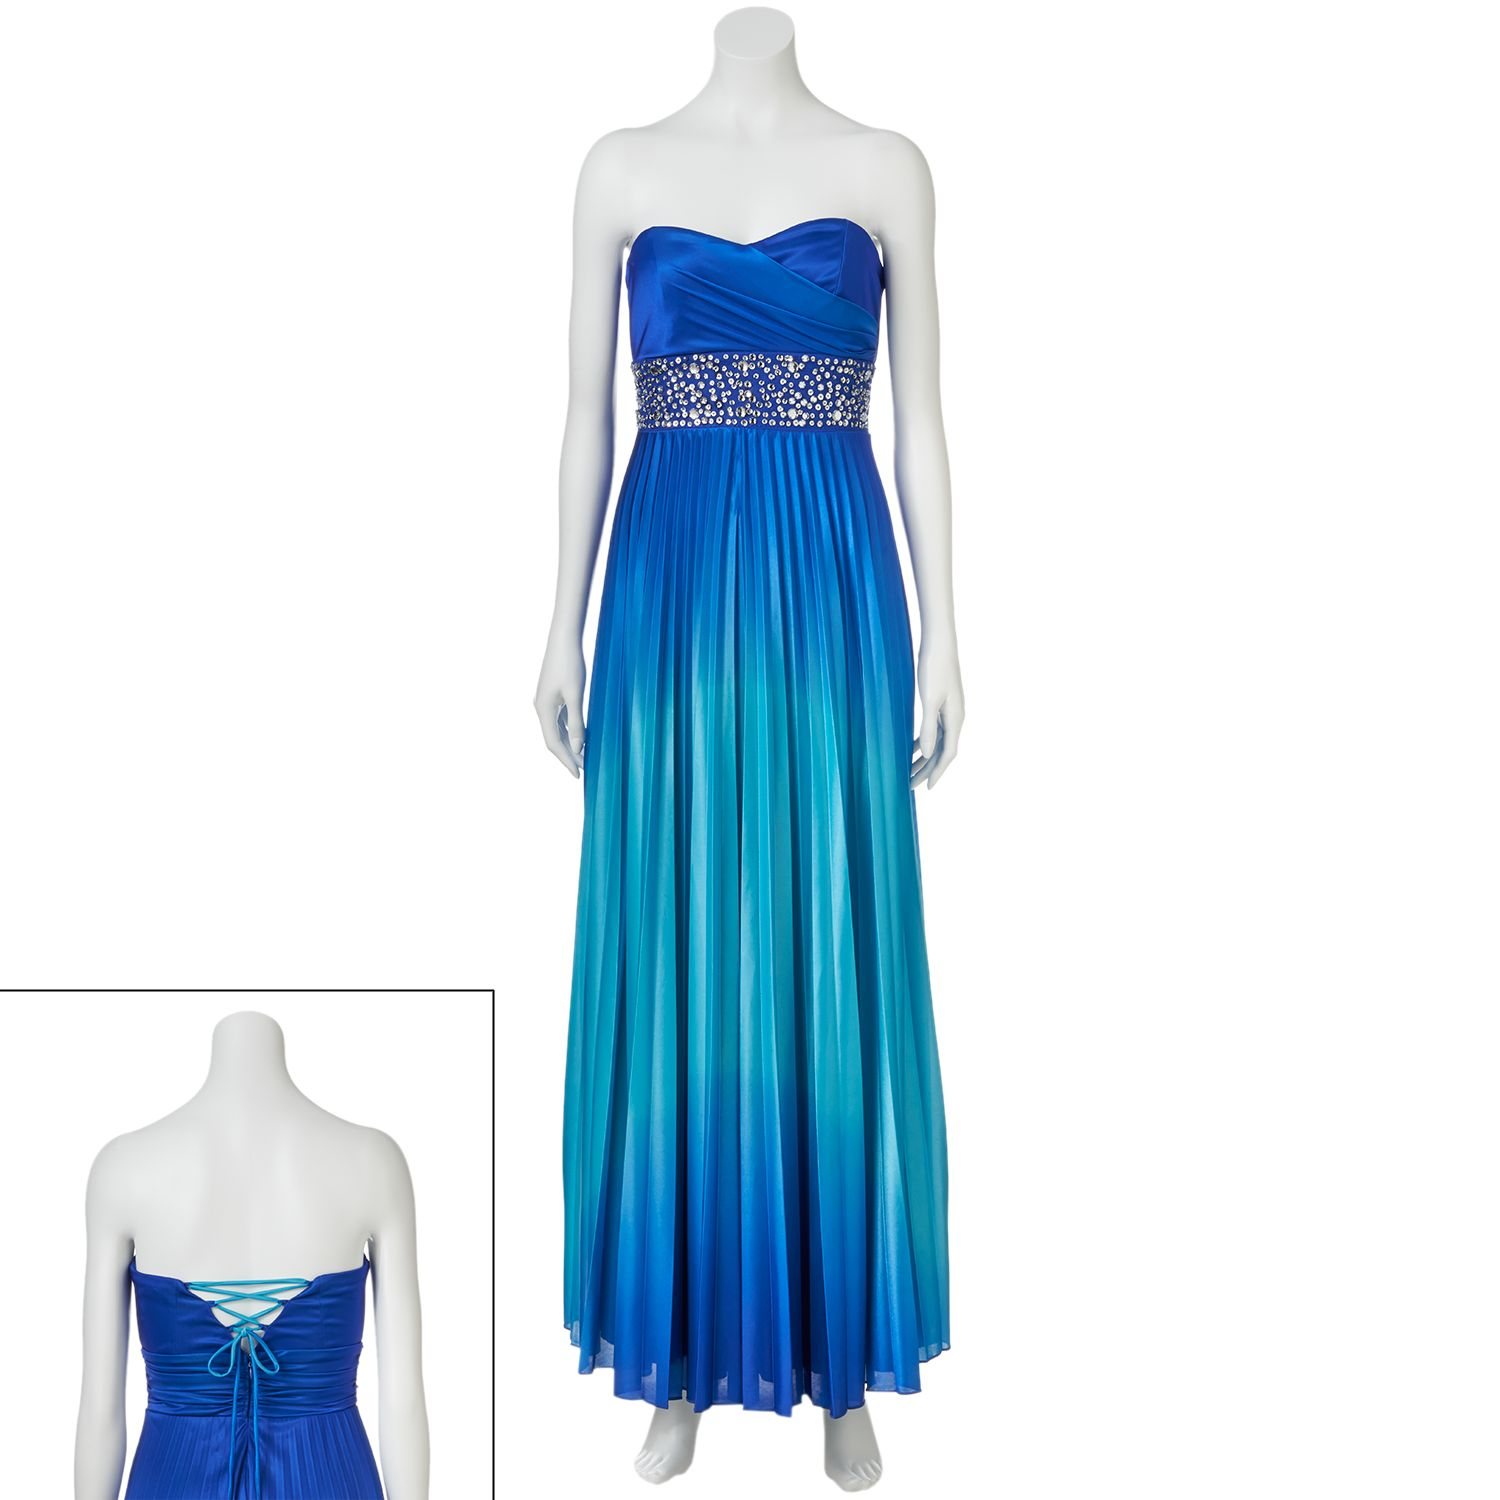 Enchanting Kohls Prom Dresses Picture Collection - All Wedding ...